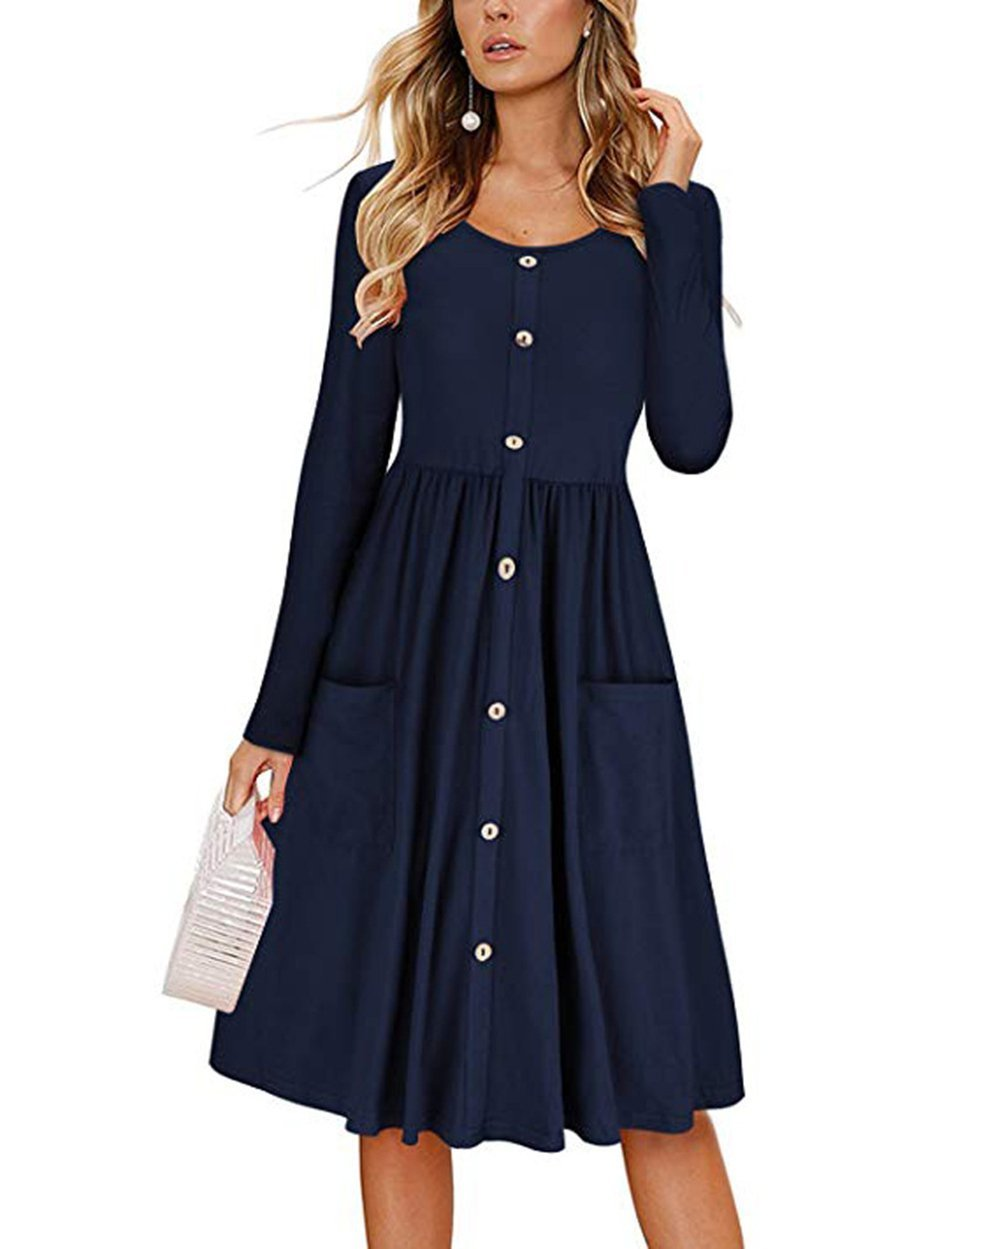 Barlver Women Casual Basic Long Sleeve T-Shirts Dress Crew Neck Button Down Swing Midi Dress with Pockets Crew Neck-Navy 10-12